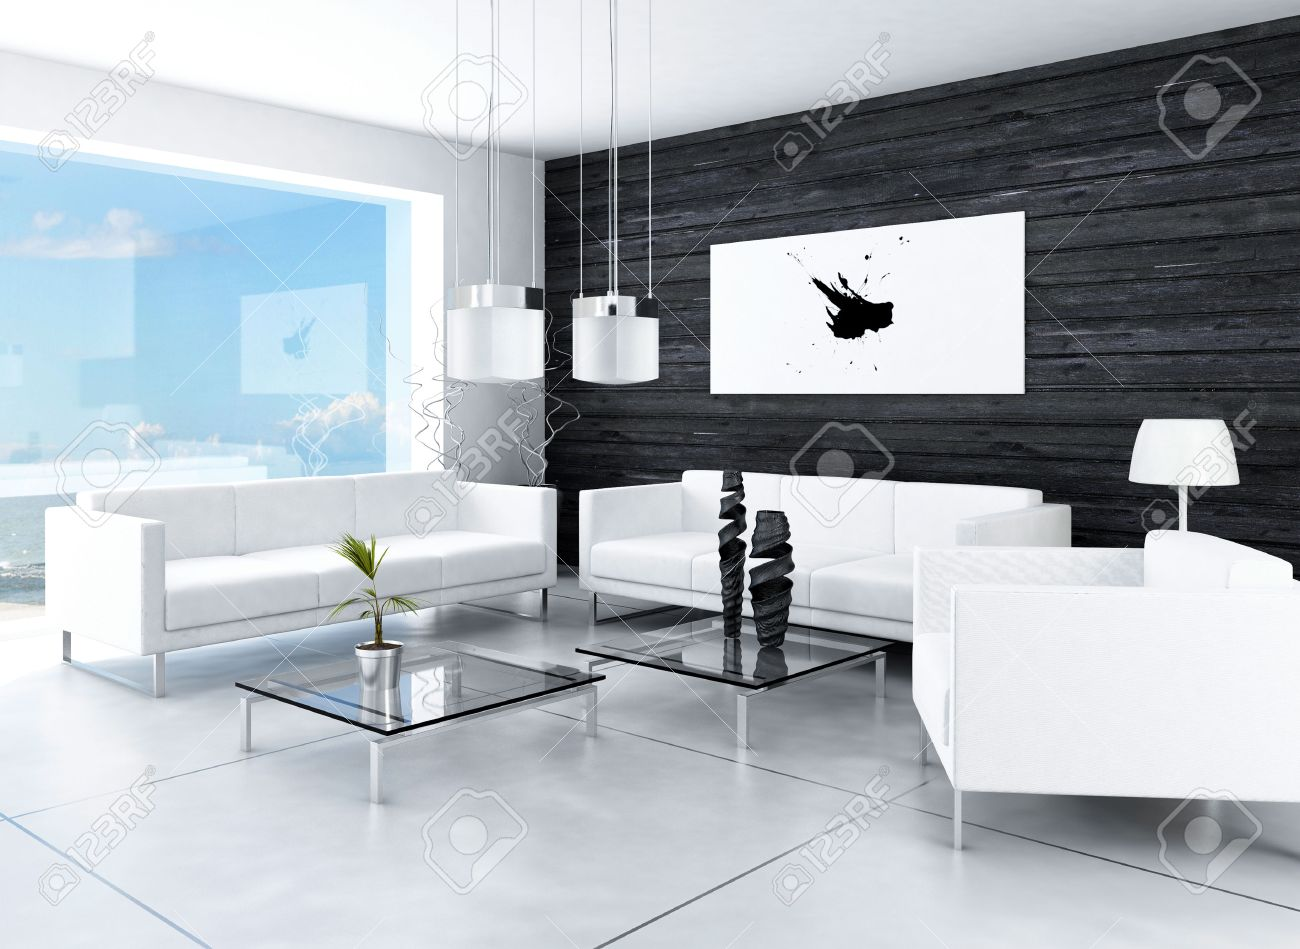 Modern Design Black And White Living Room Interior Stock Photo ...